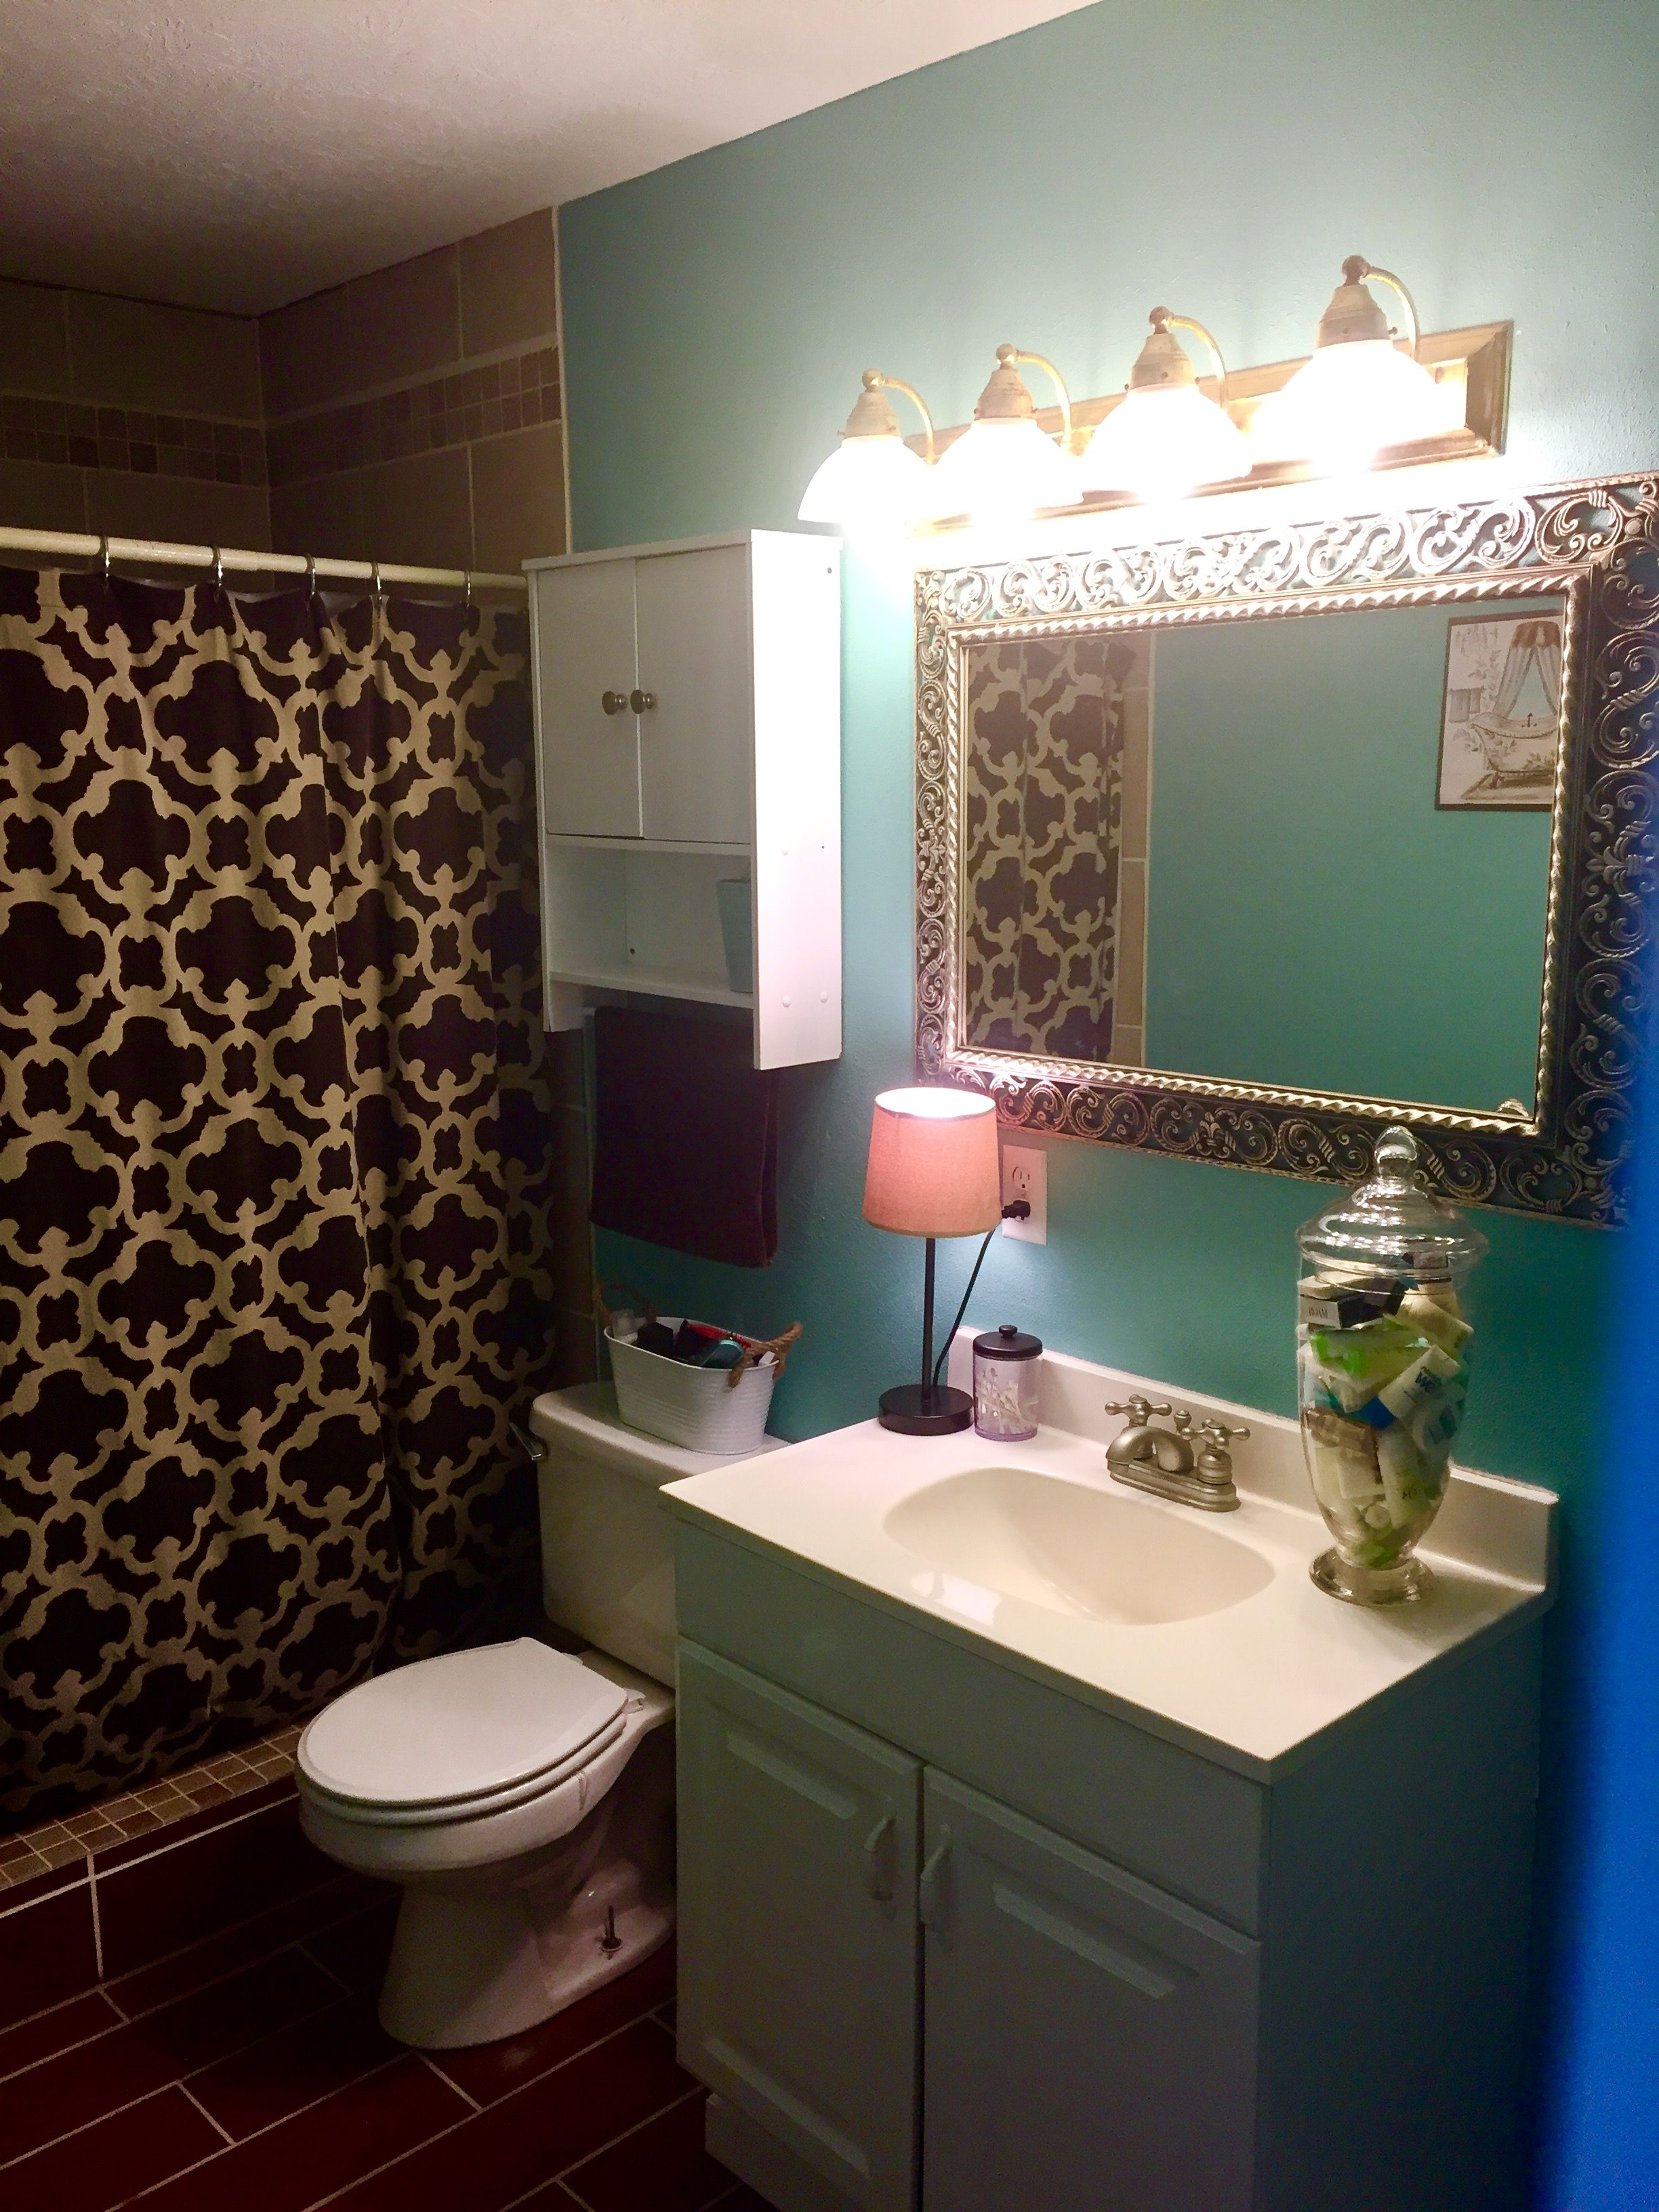 Bathroom Makeovers To Sell diy bathroom makeover. paint color: spa day (c+k) light fixture